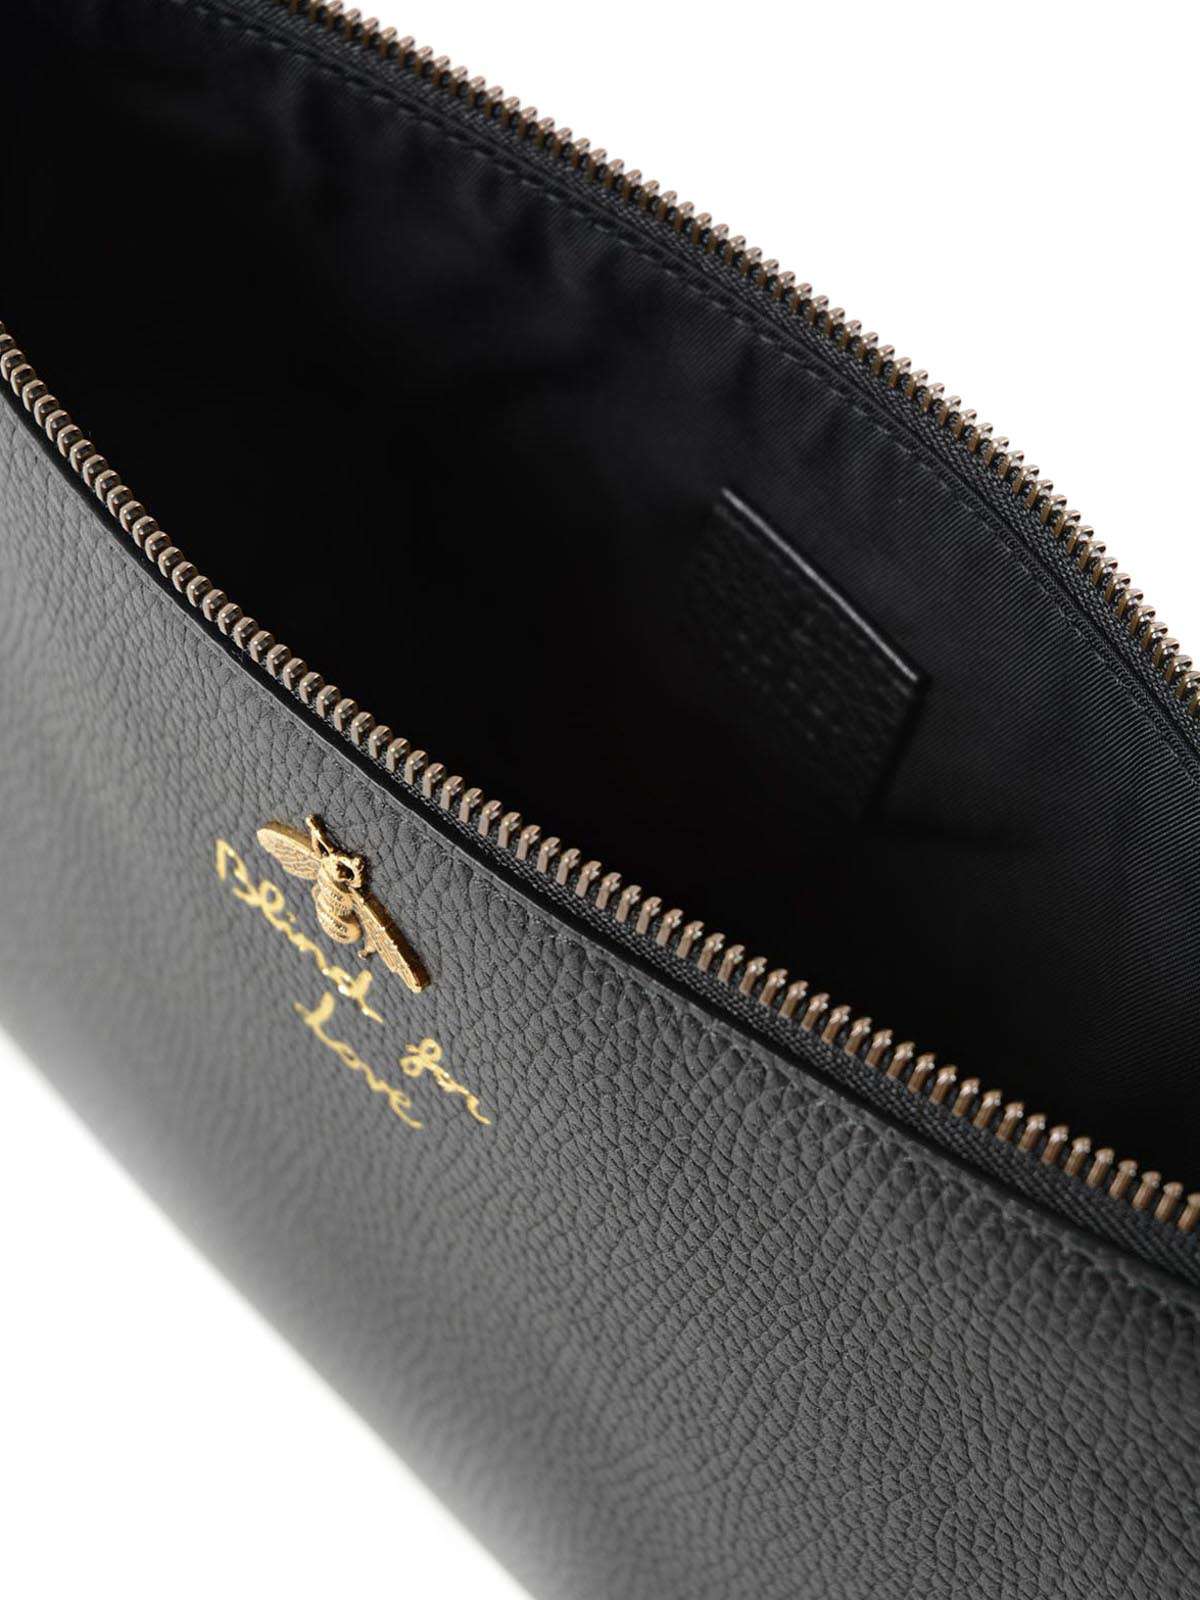 9bcf8f3446d0e7 Gucci - Bee detailed hammered leather pouch - clutches - 460187 ...